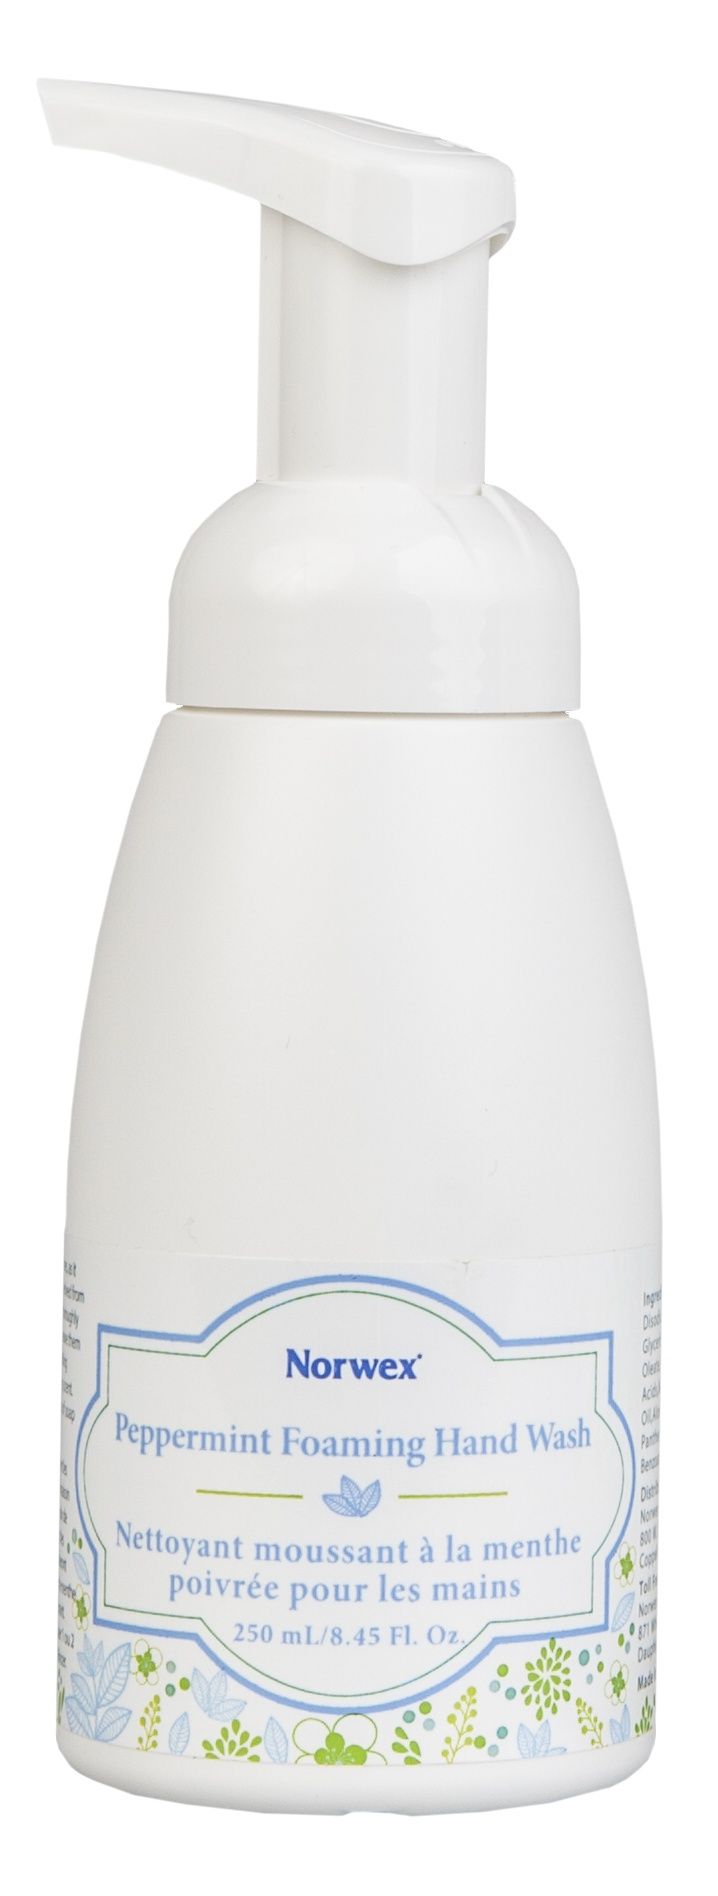 Norwex Peppermint Foaming Hand Wash - Peppermint